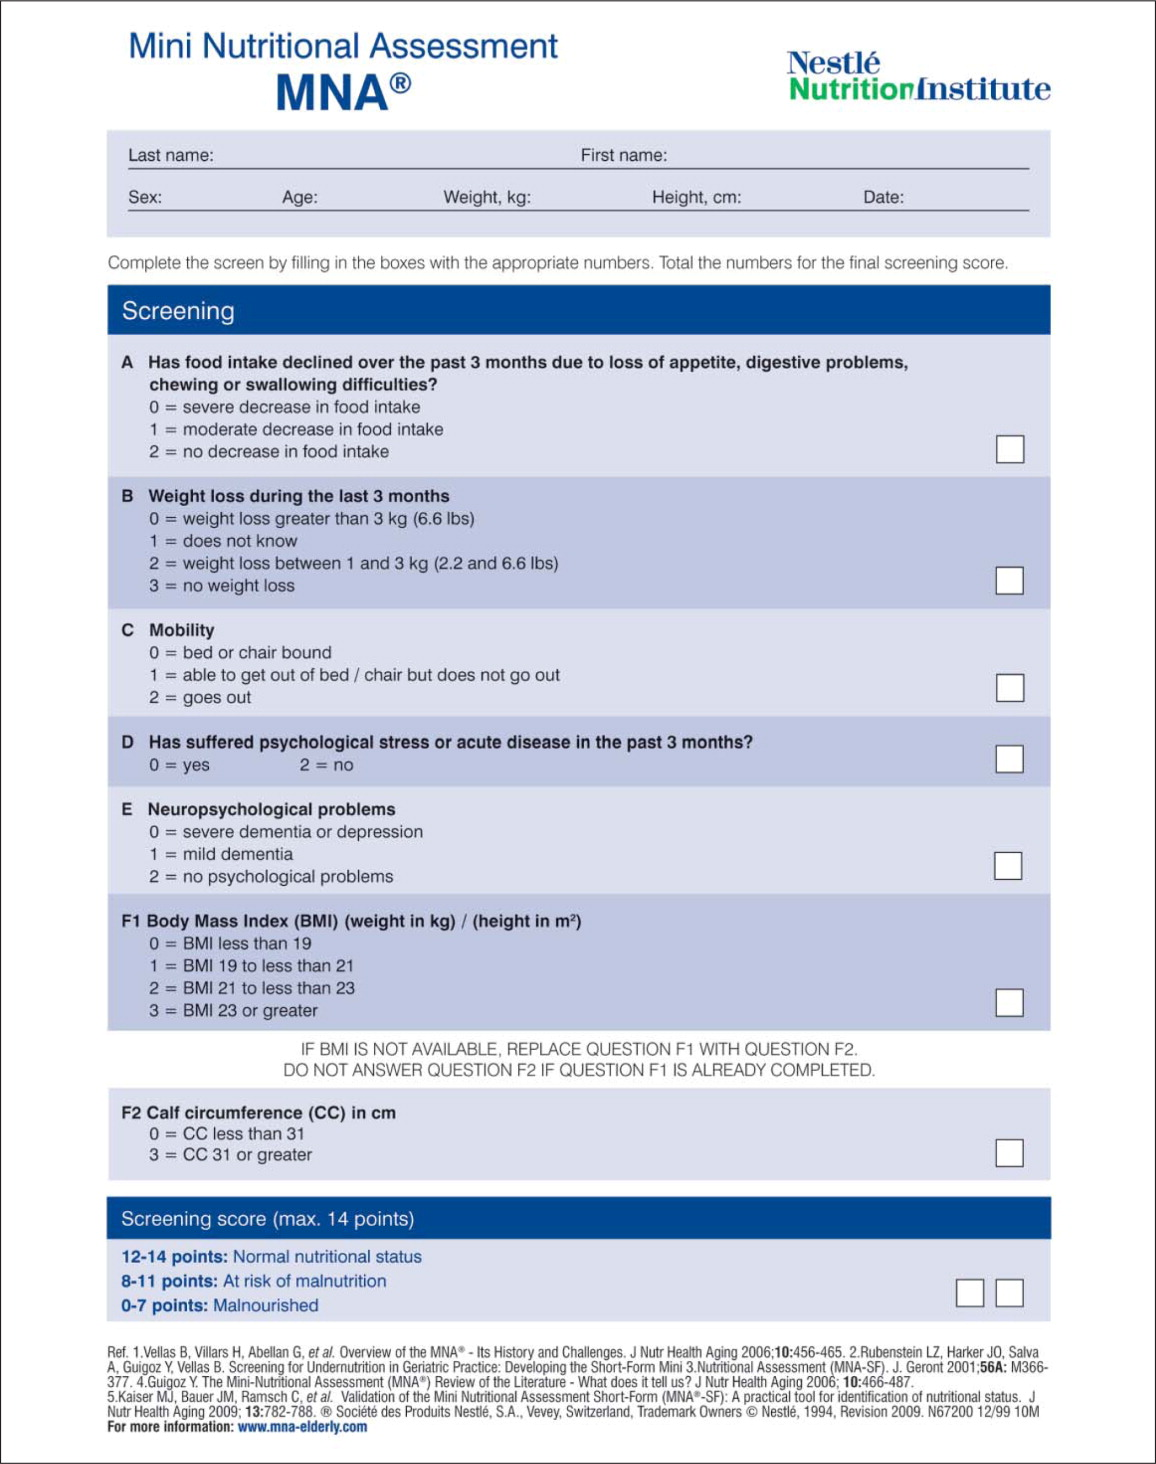 Newest Mini Nutritional Assessment®-short form (2009 version), reprinted with permission from Nestlé Nutrition Institute.